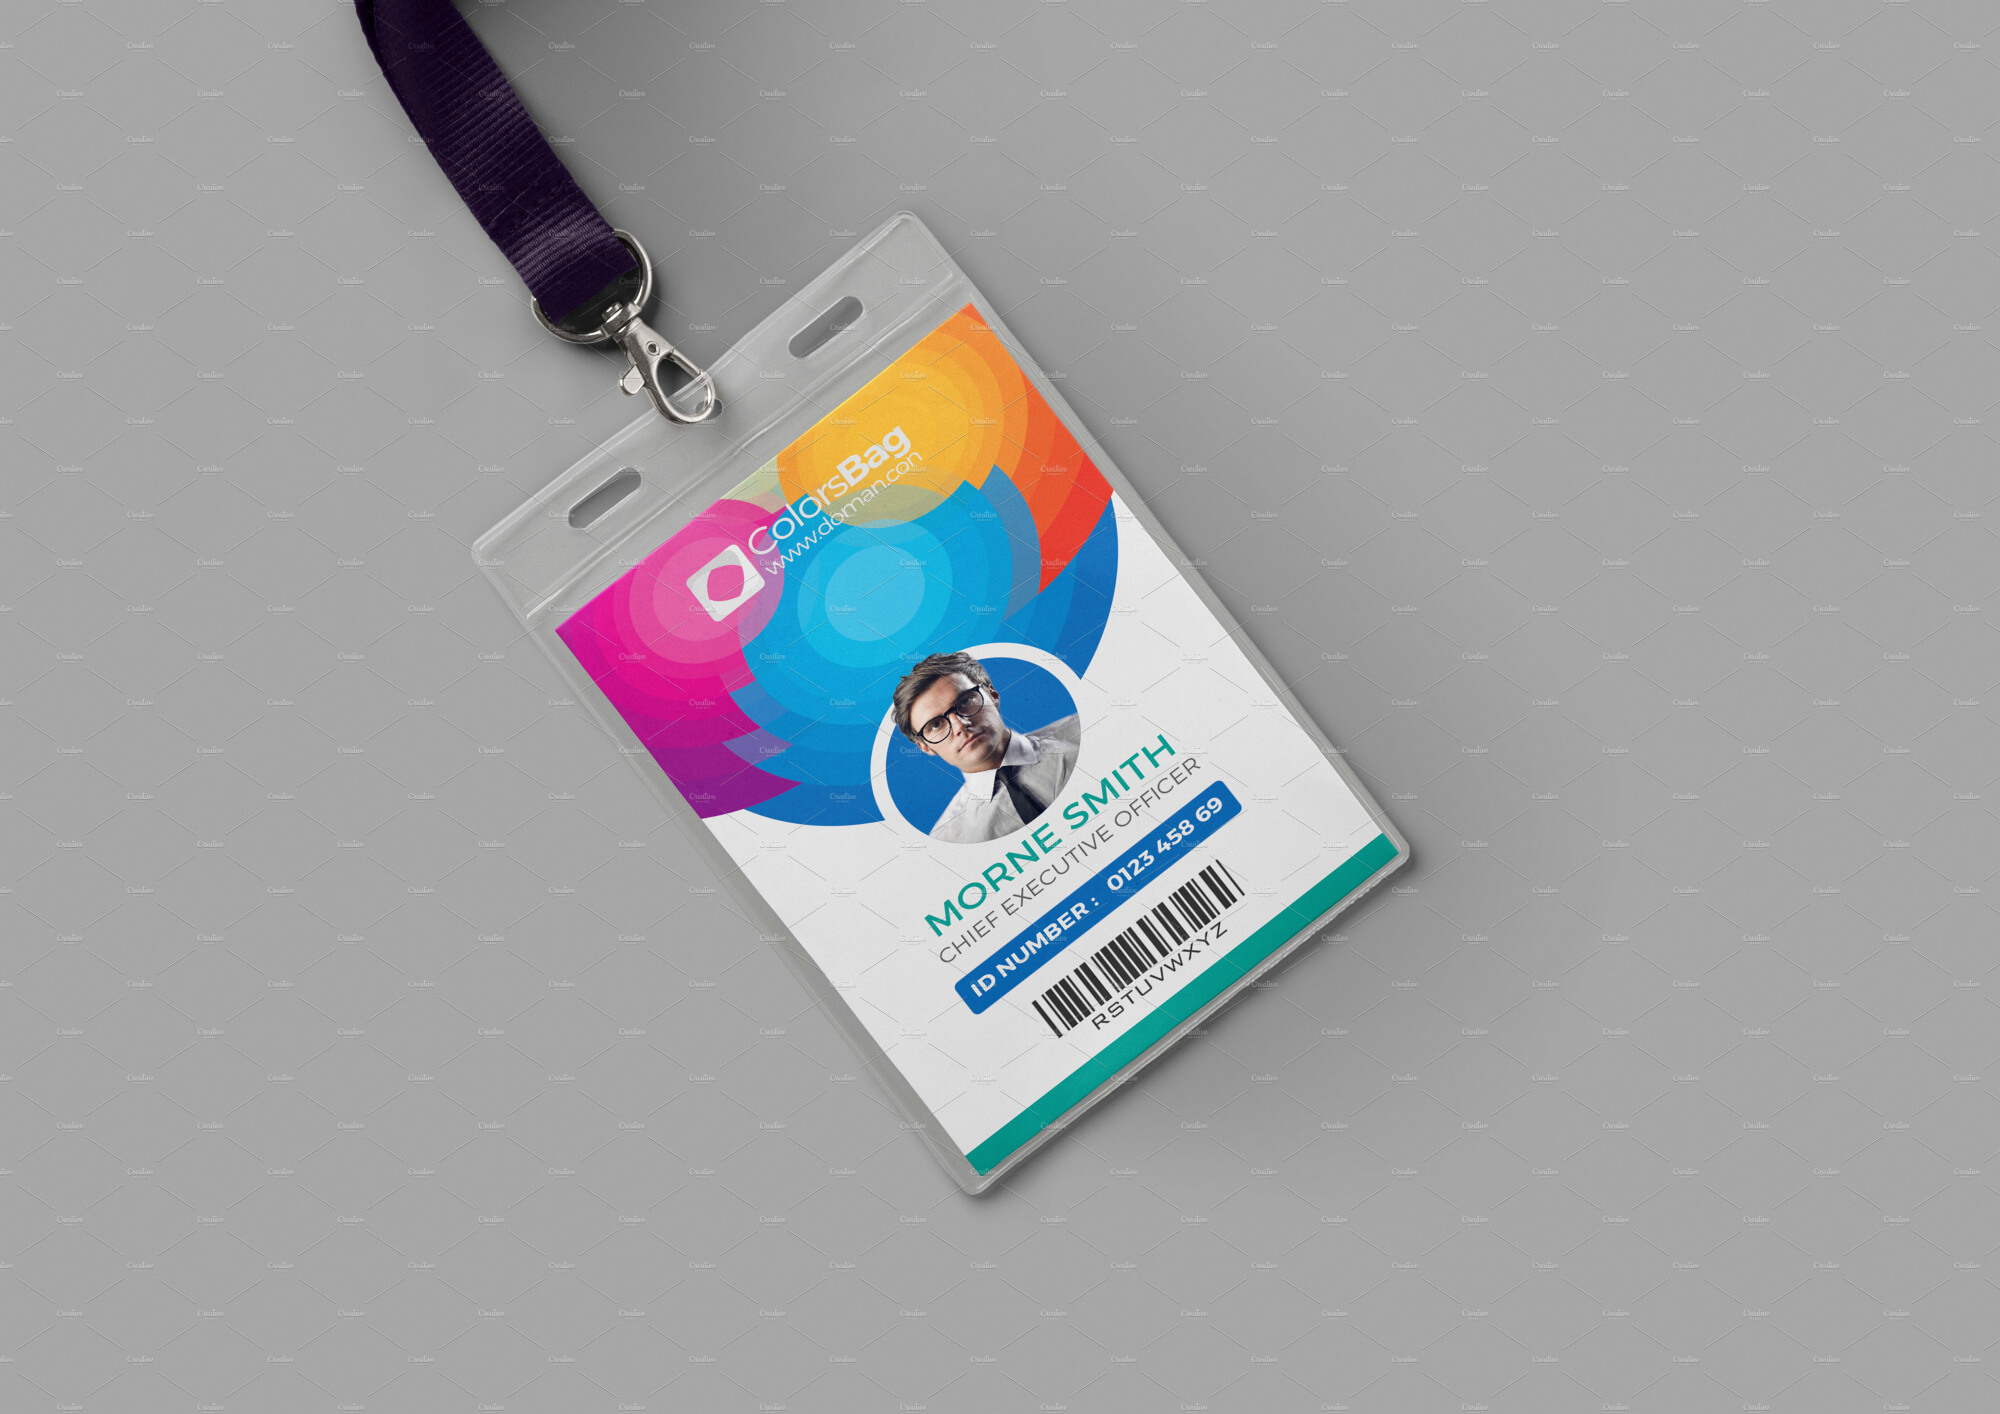 Faculty Id Card Template - Atlantaauctionco with regard to Faculty Id Card Template